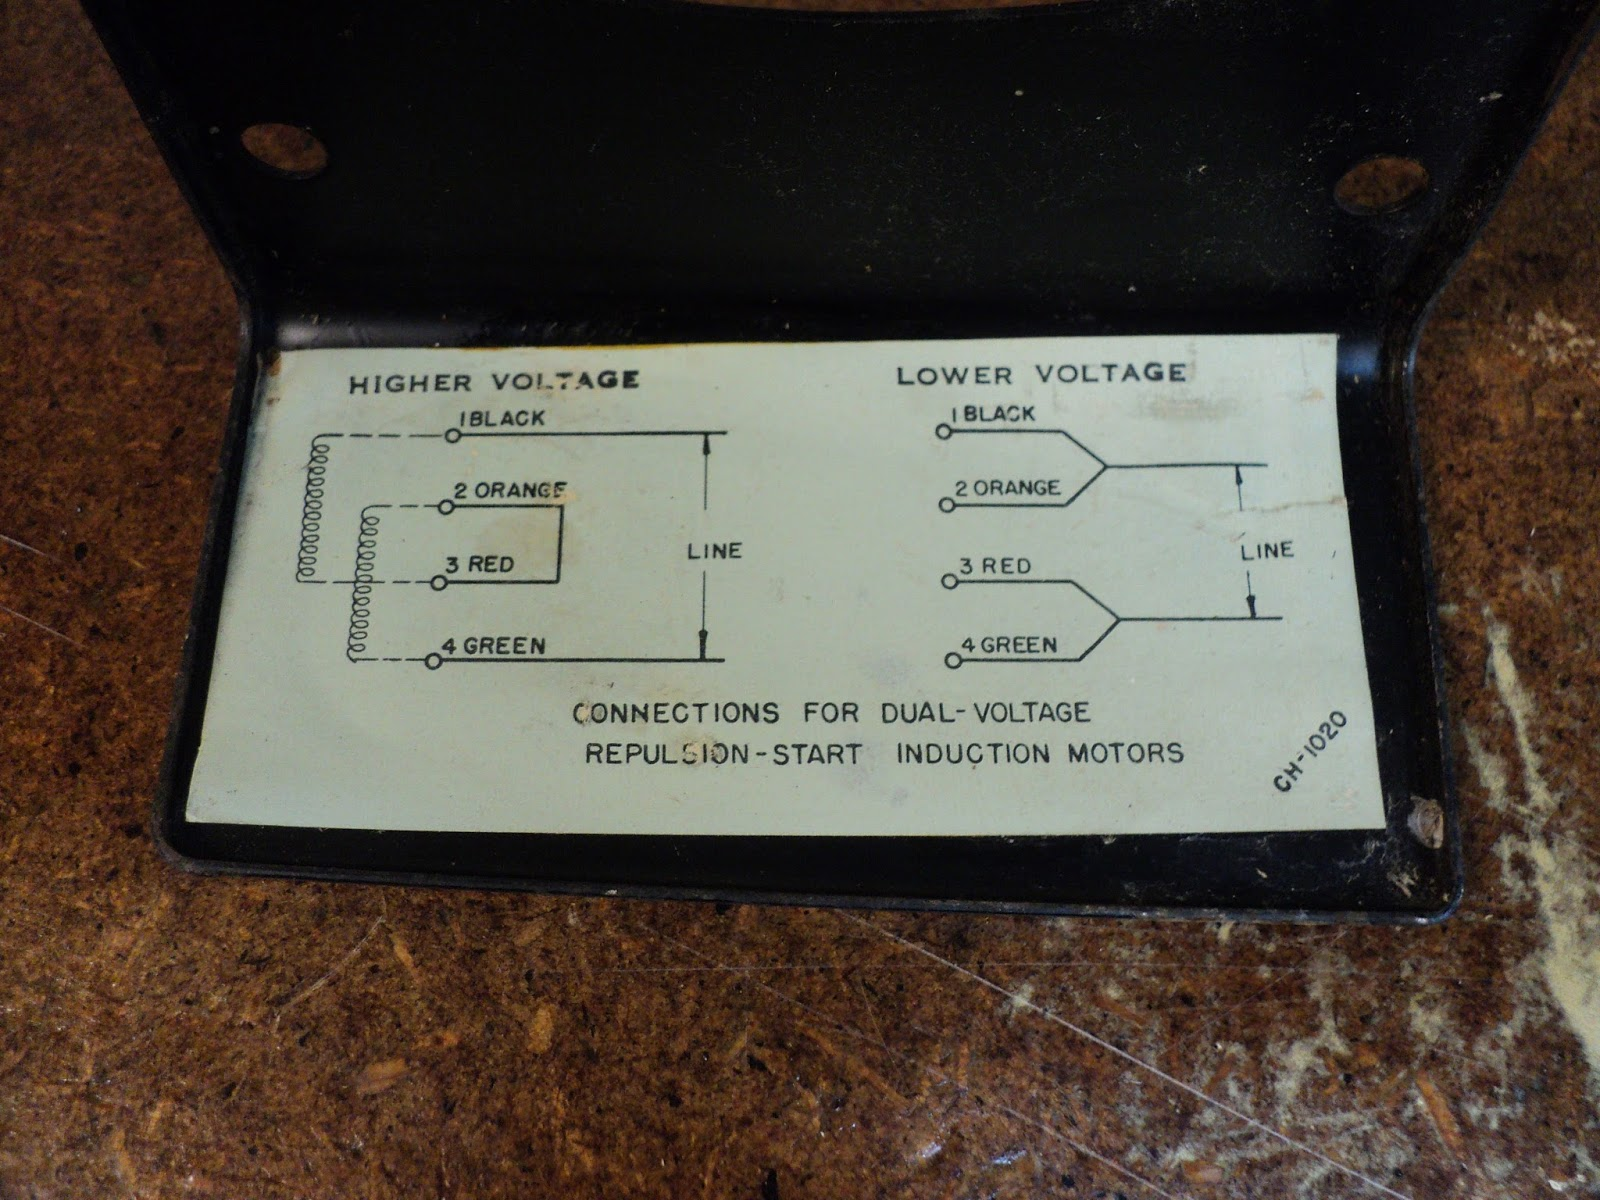 rouge river workshop an antique wagner electric hp electric motor the diagram doesn t mention reversibility so i guess that s not doable that s ok though because the motor s direction of rotation is correct for the